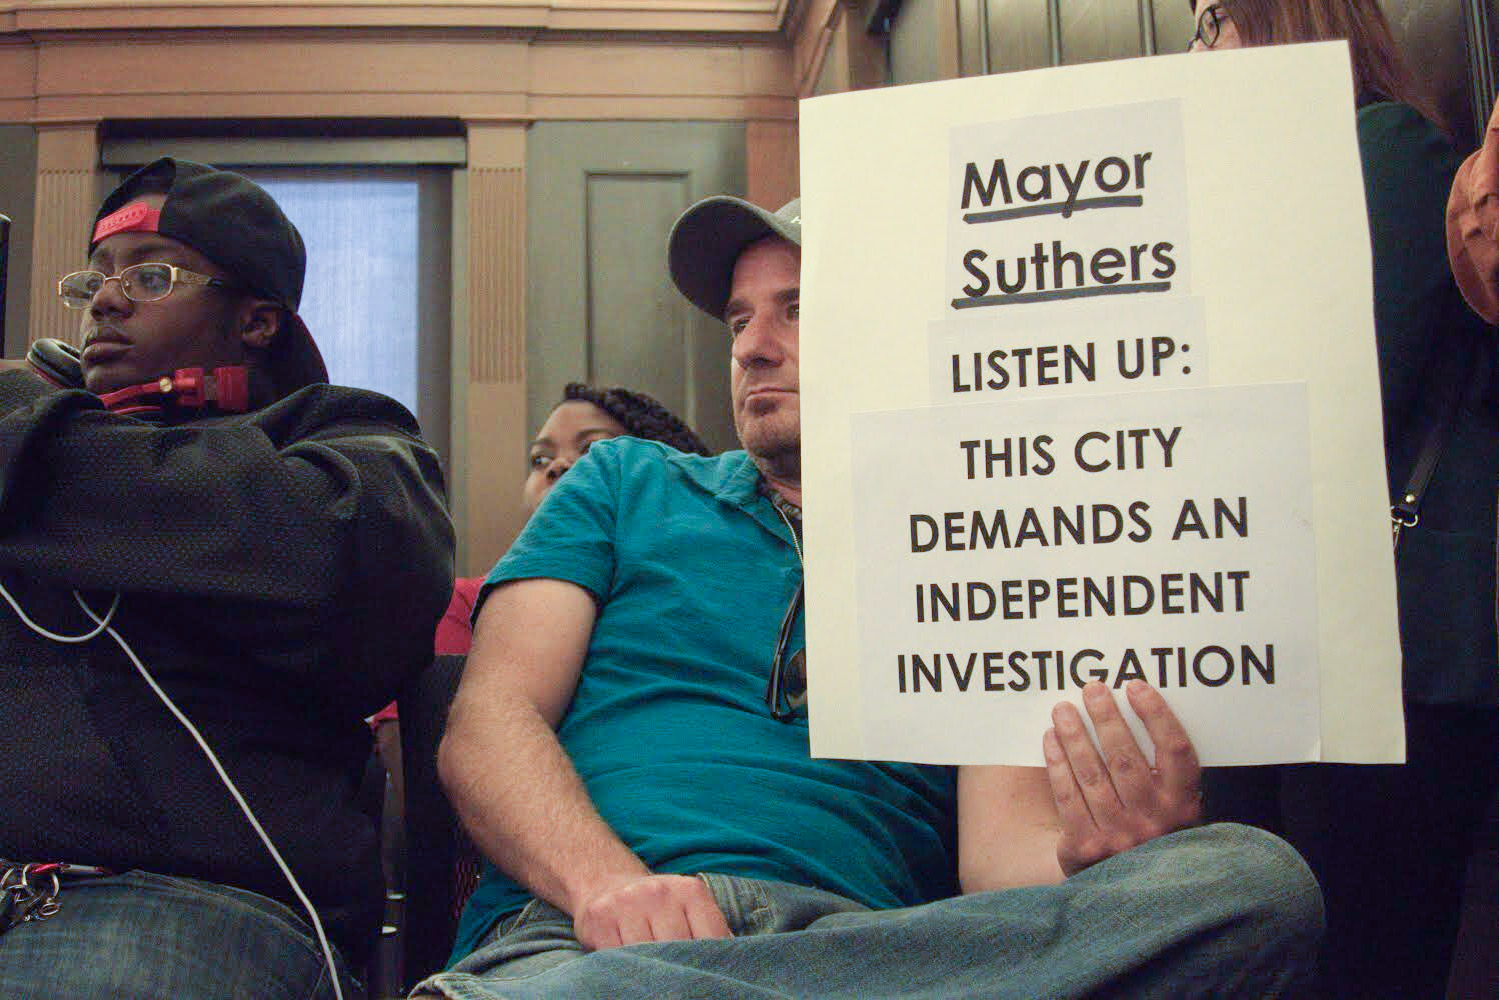 Concerned community members packed the chamber at City Hall on Tuesday, Sept. 10, 2019, for the at times emotional meeting. Many held protest signs, some had tears running down their face while others were visibly angry. They are upset the El Paso Sheriff's Department investigated Bailey's shooting and the county's District Attorney will decide whether the officers involved followed Colorado law.